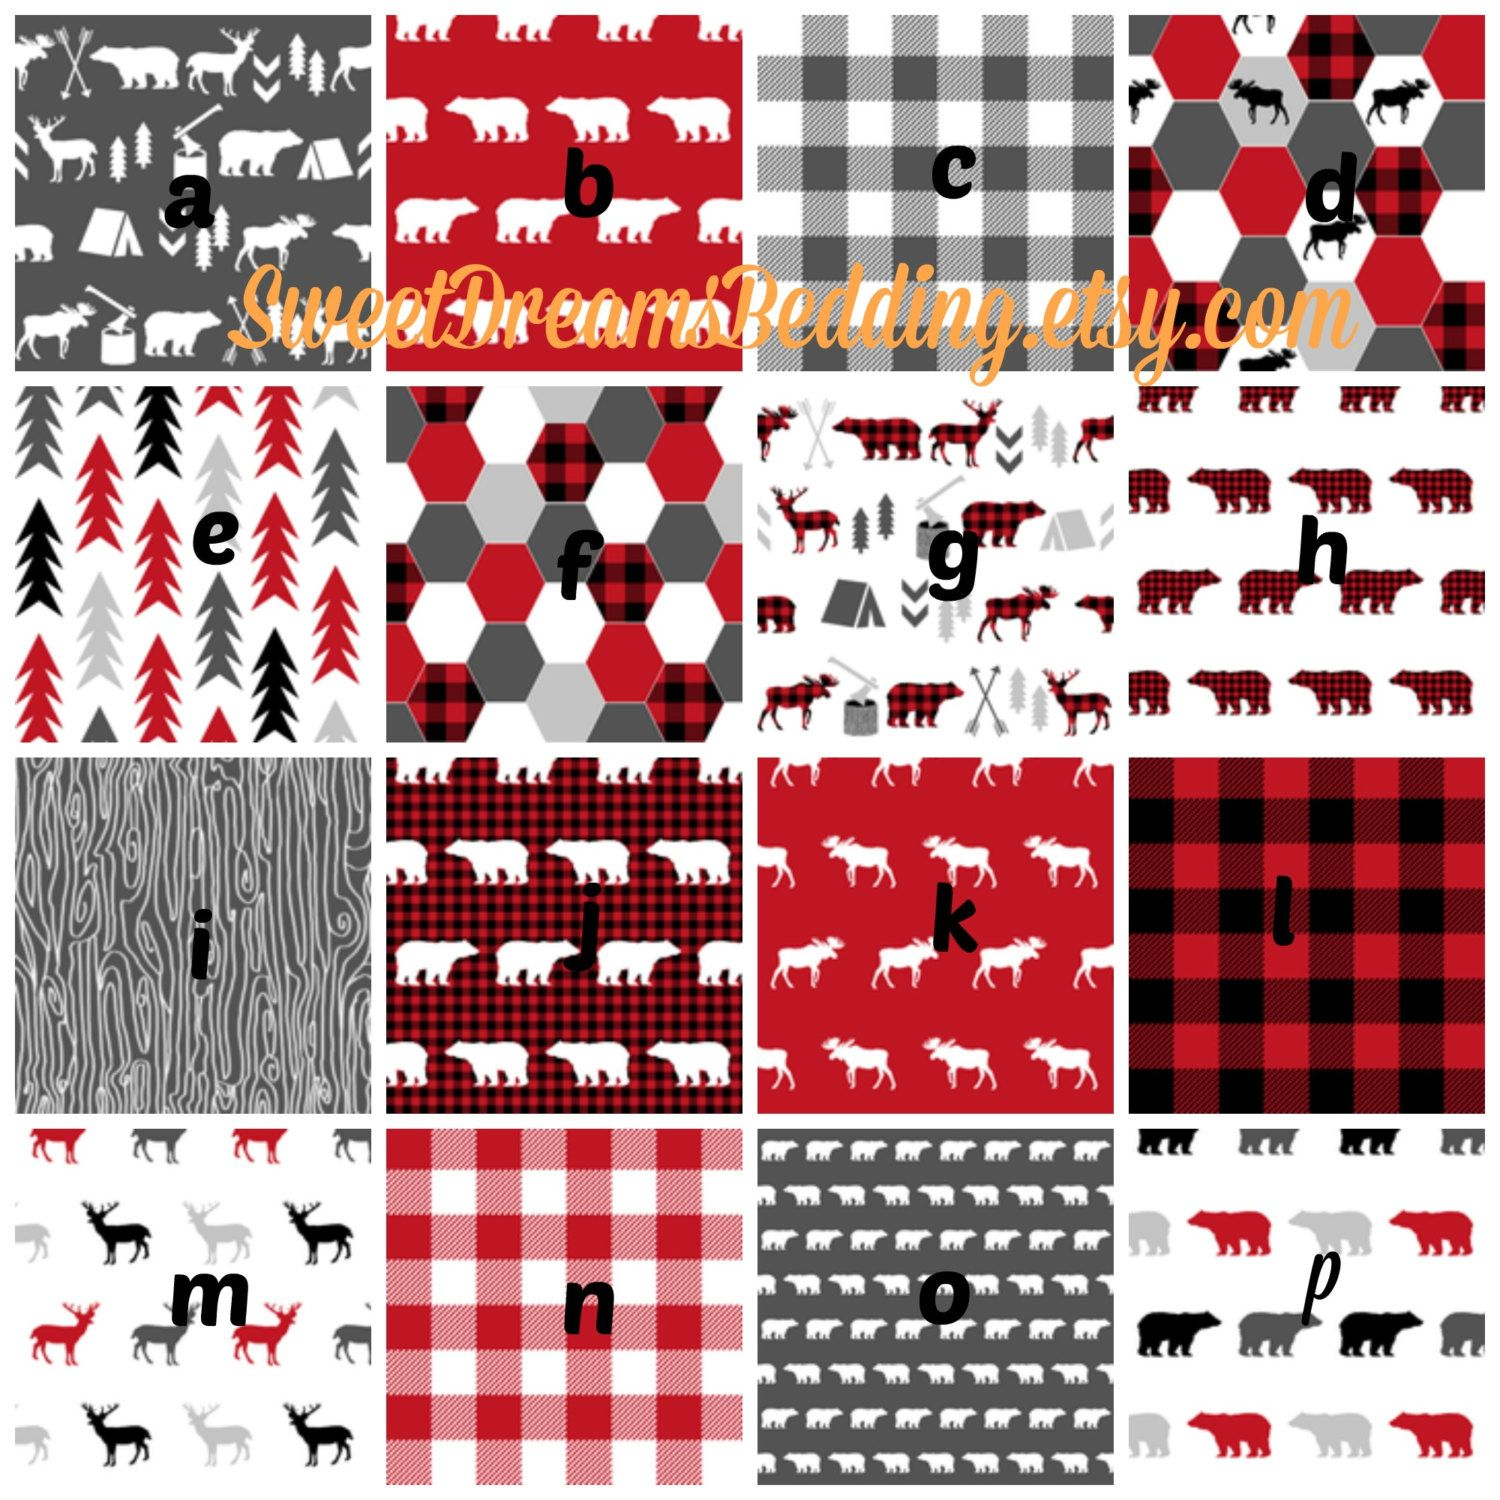 Crib Bedding Woodland Deer Crib Bedding Red Black buffalo plaid deer, bear. Customize : crib sheet, changing cover, skirt, bumper, blanket by SweetDreamsBedding on Etsy